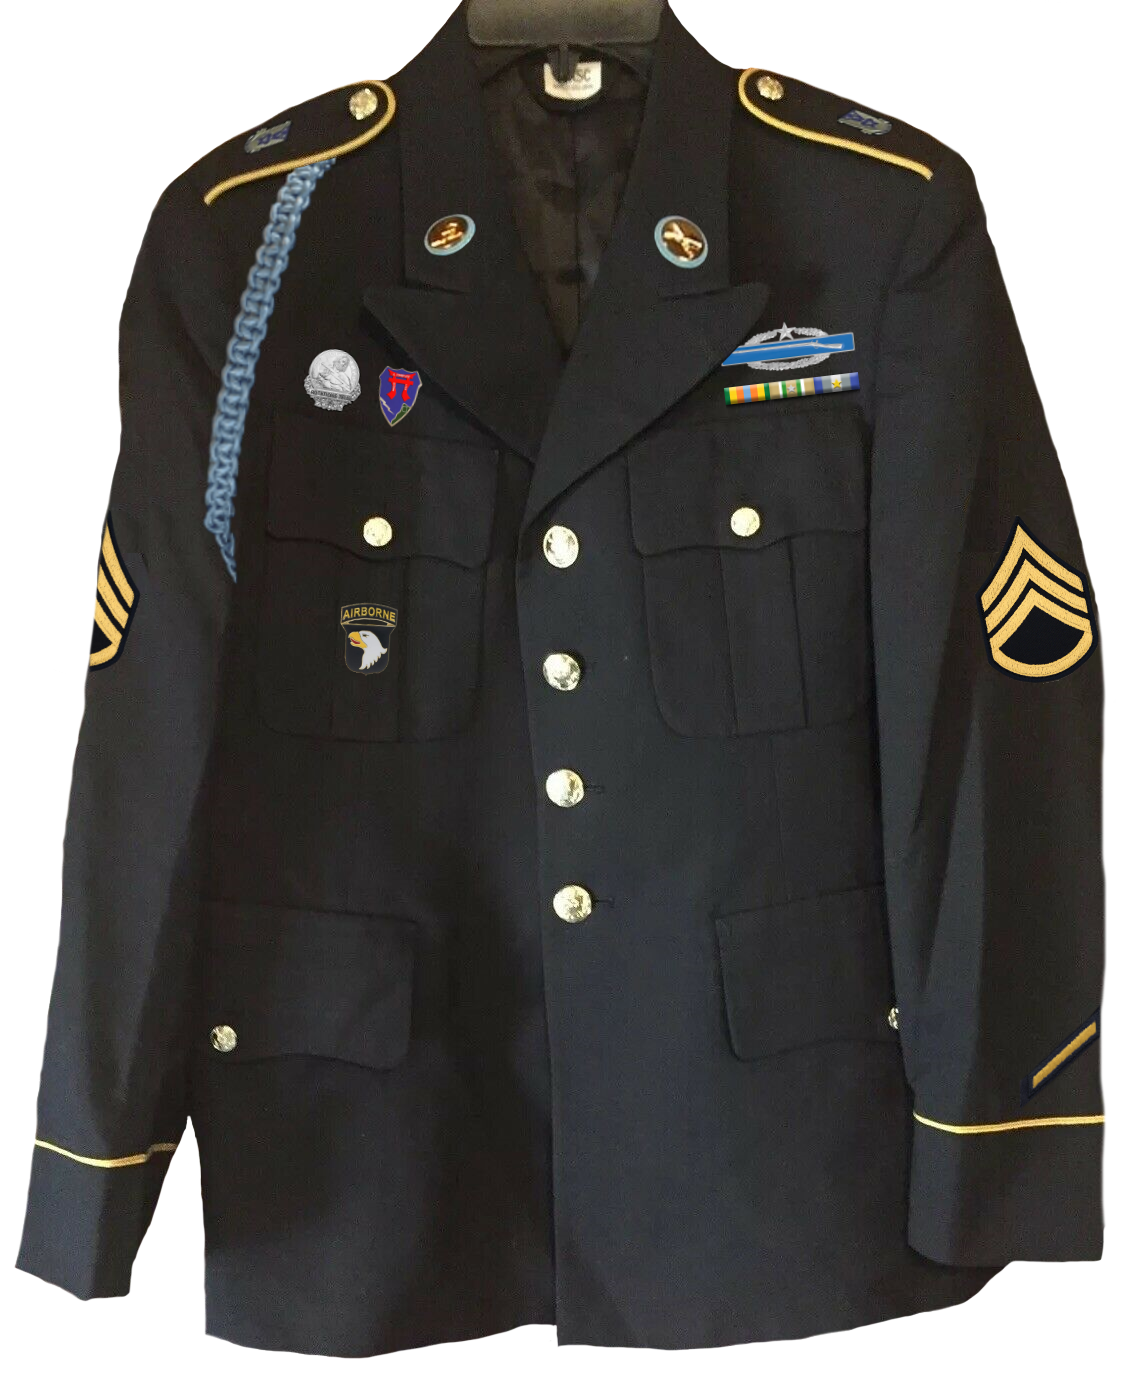 profile uniform